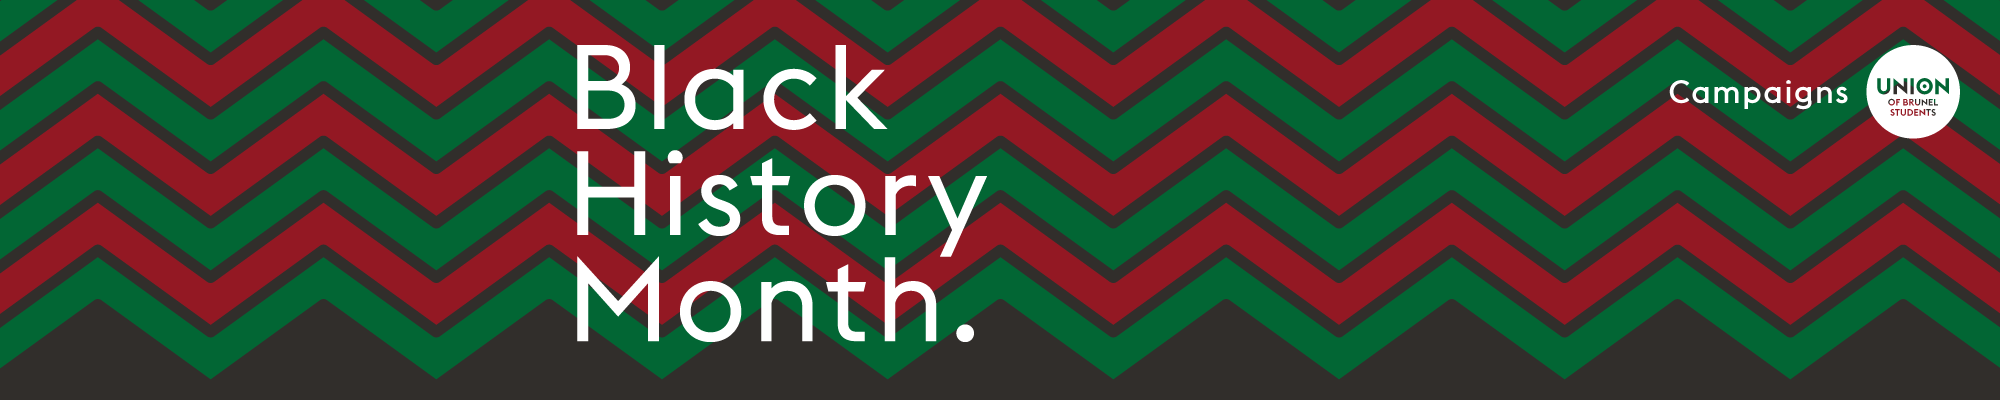 Black History Month 2020 Banner